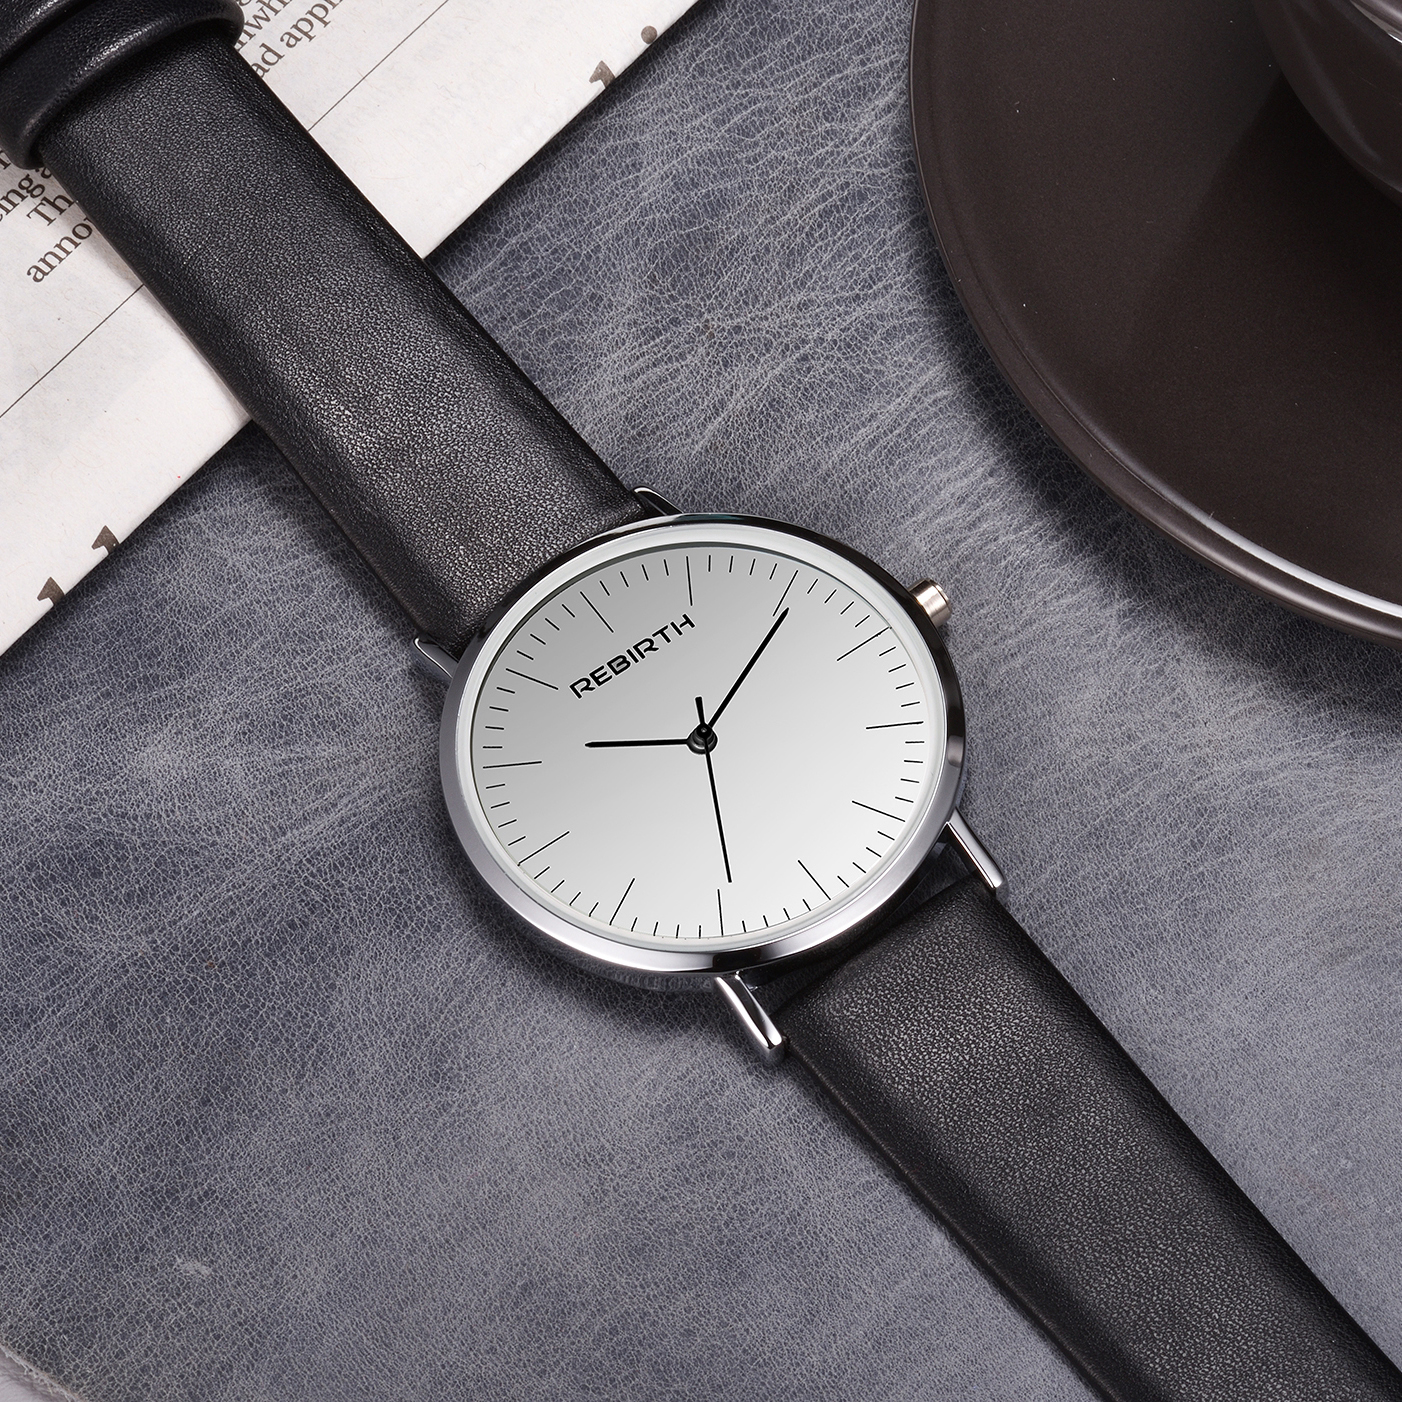 Hot Fashion Quality Vintage Classic Unisex Quartz Wristwatch Elegant Simple Leather Strap Watch Men Women Casual Style Watch